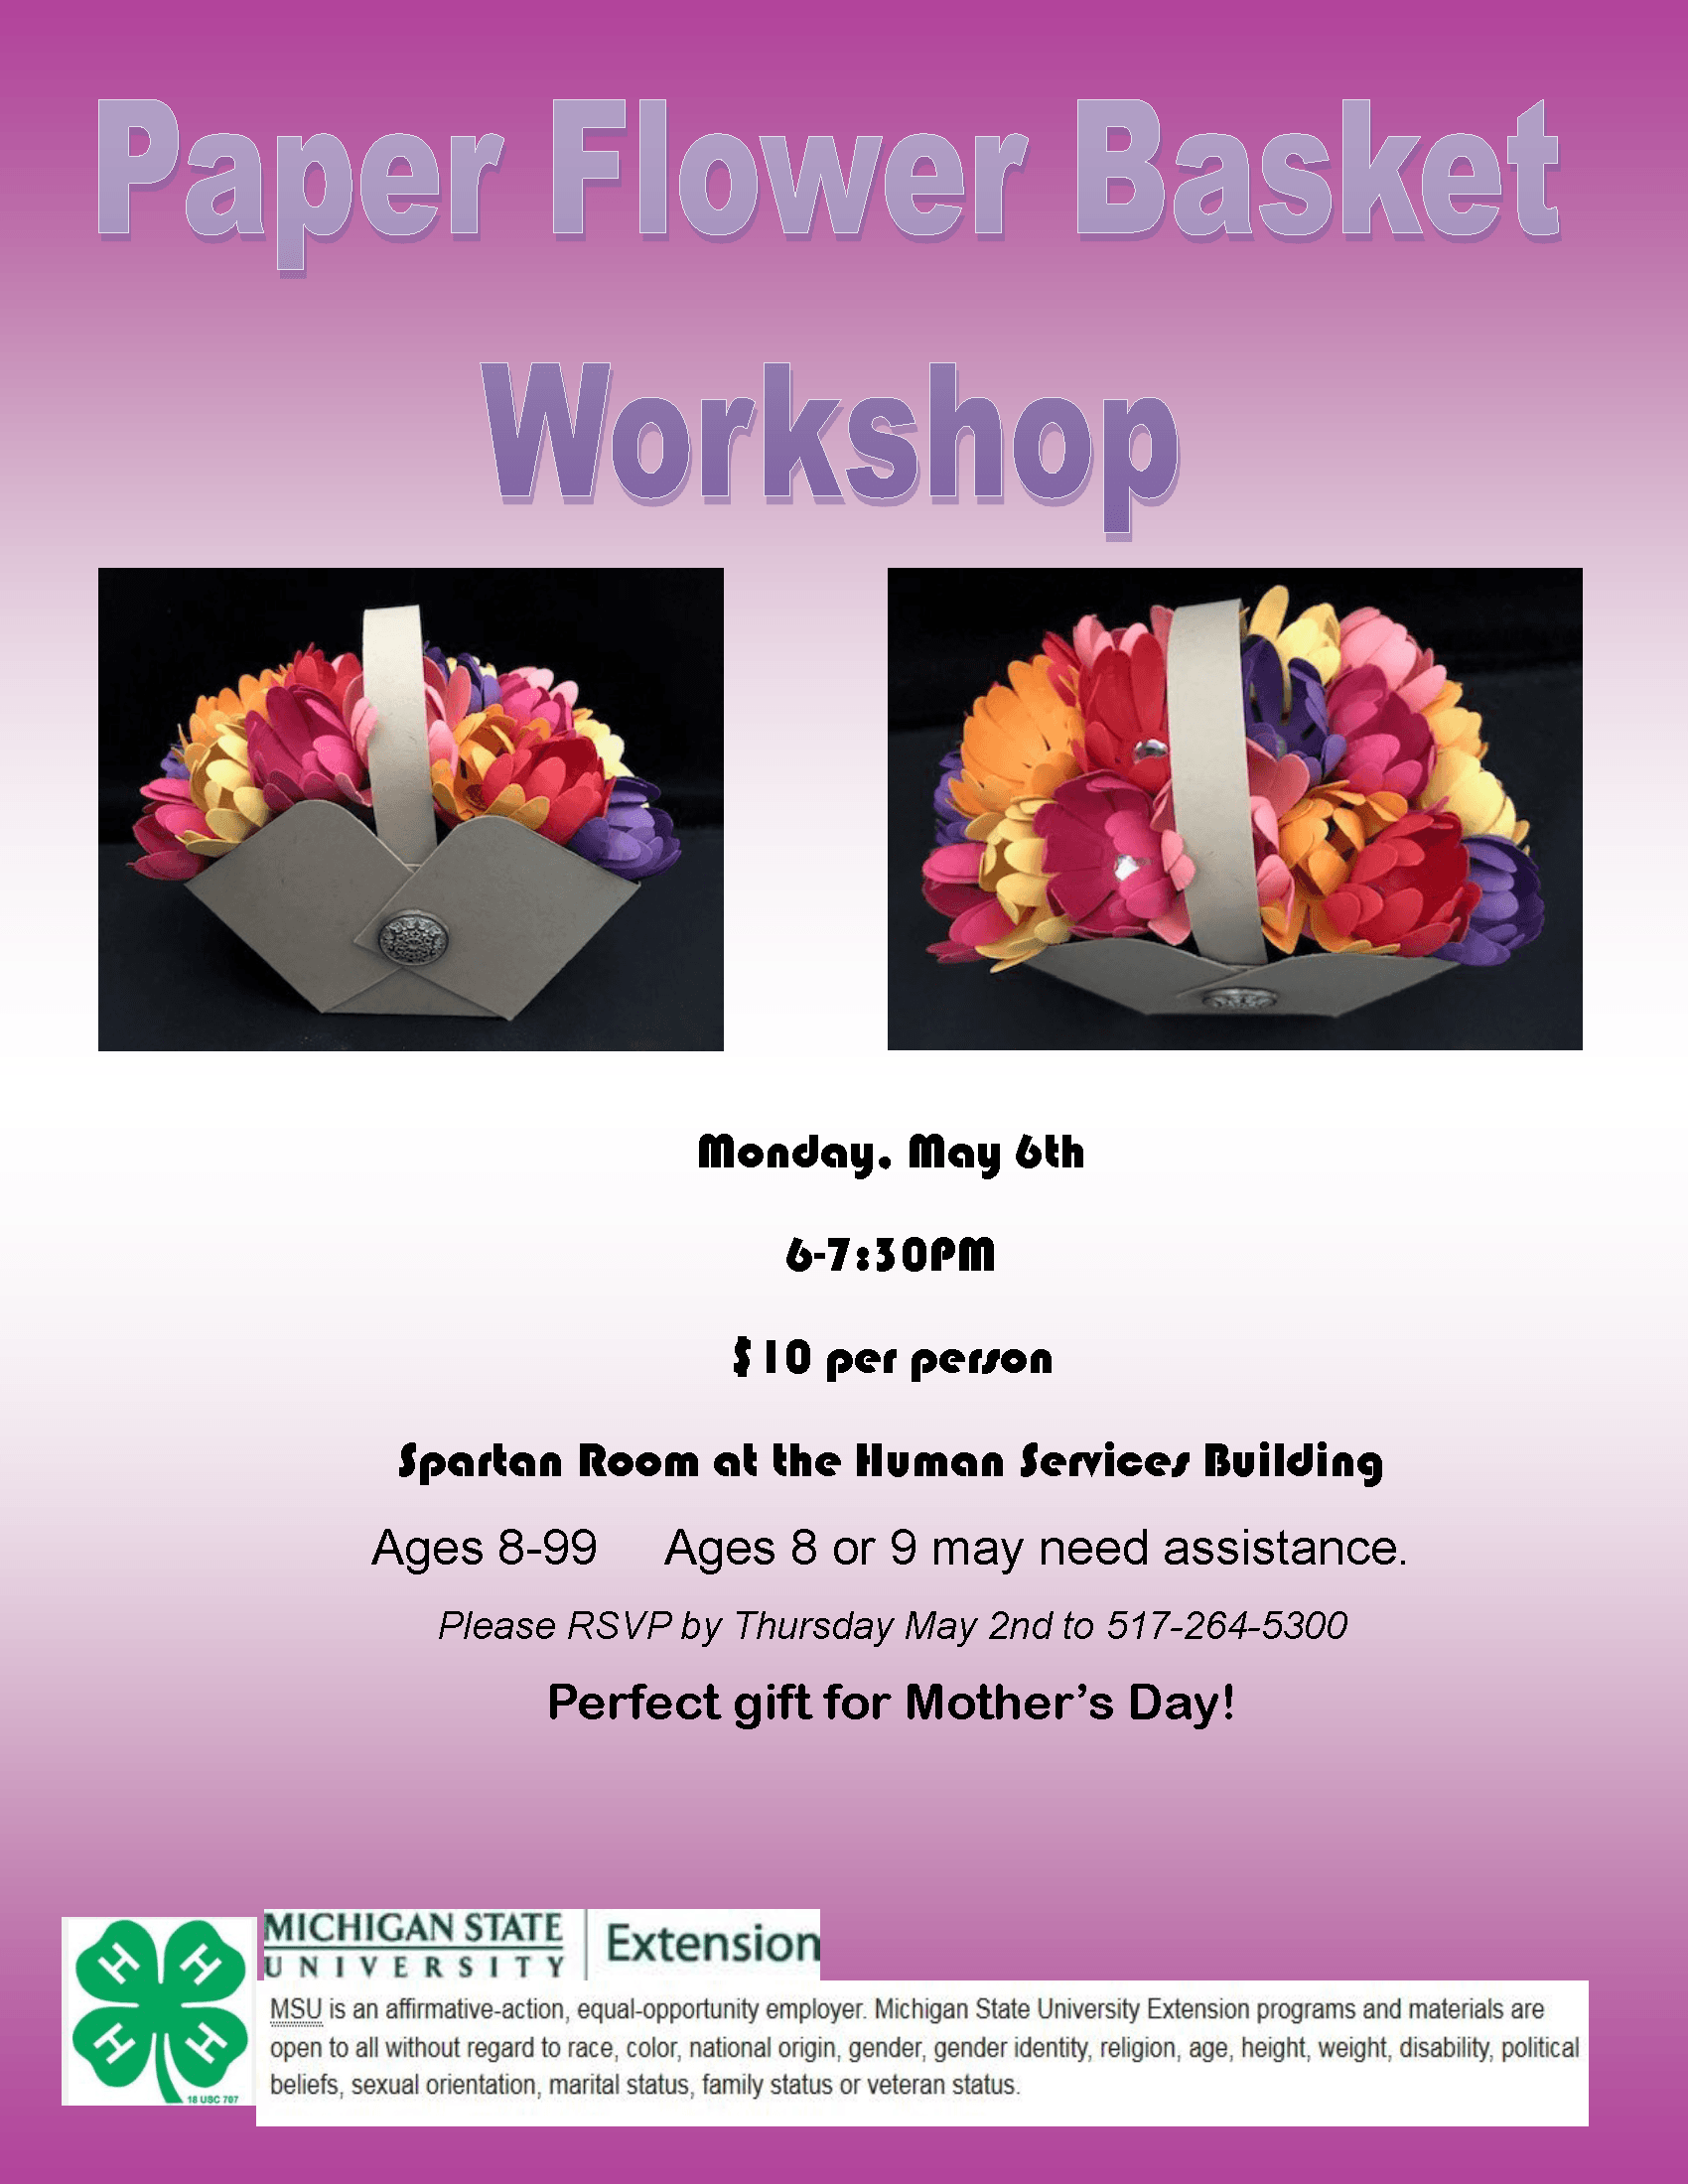 Paper Flower Basket Workshop